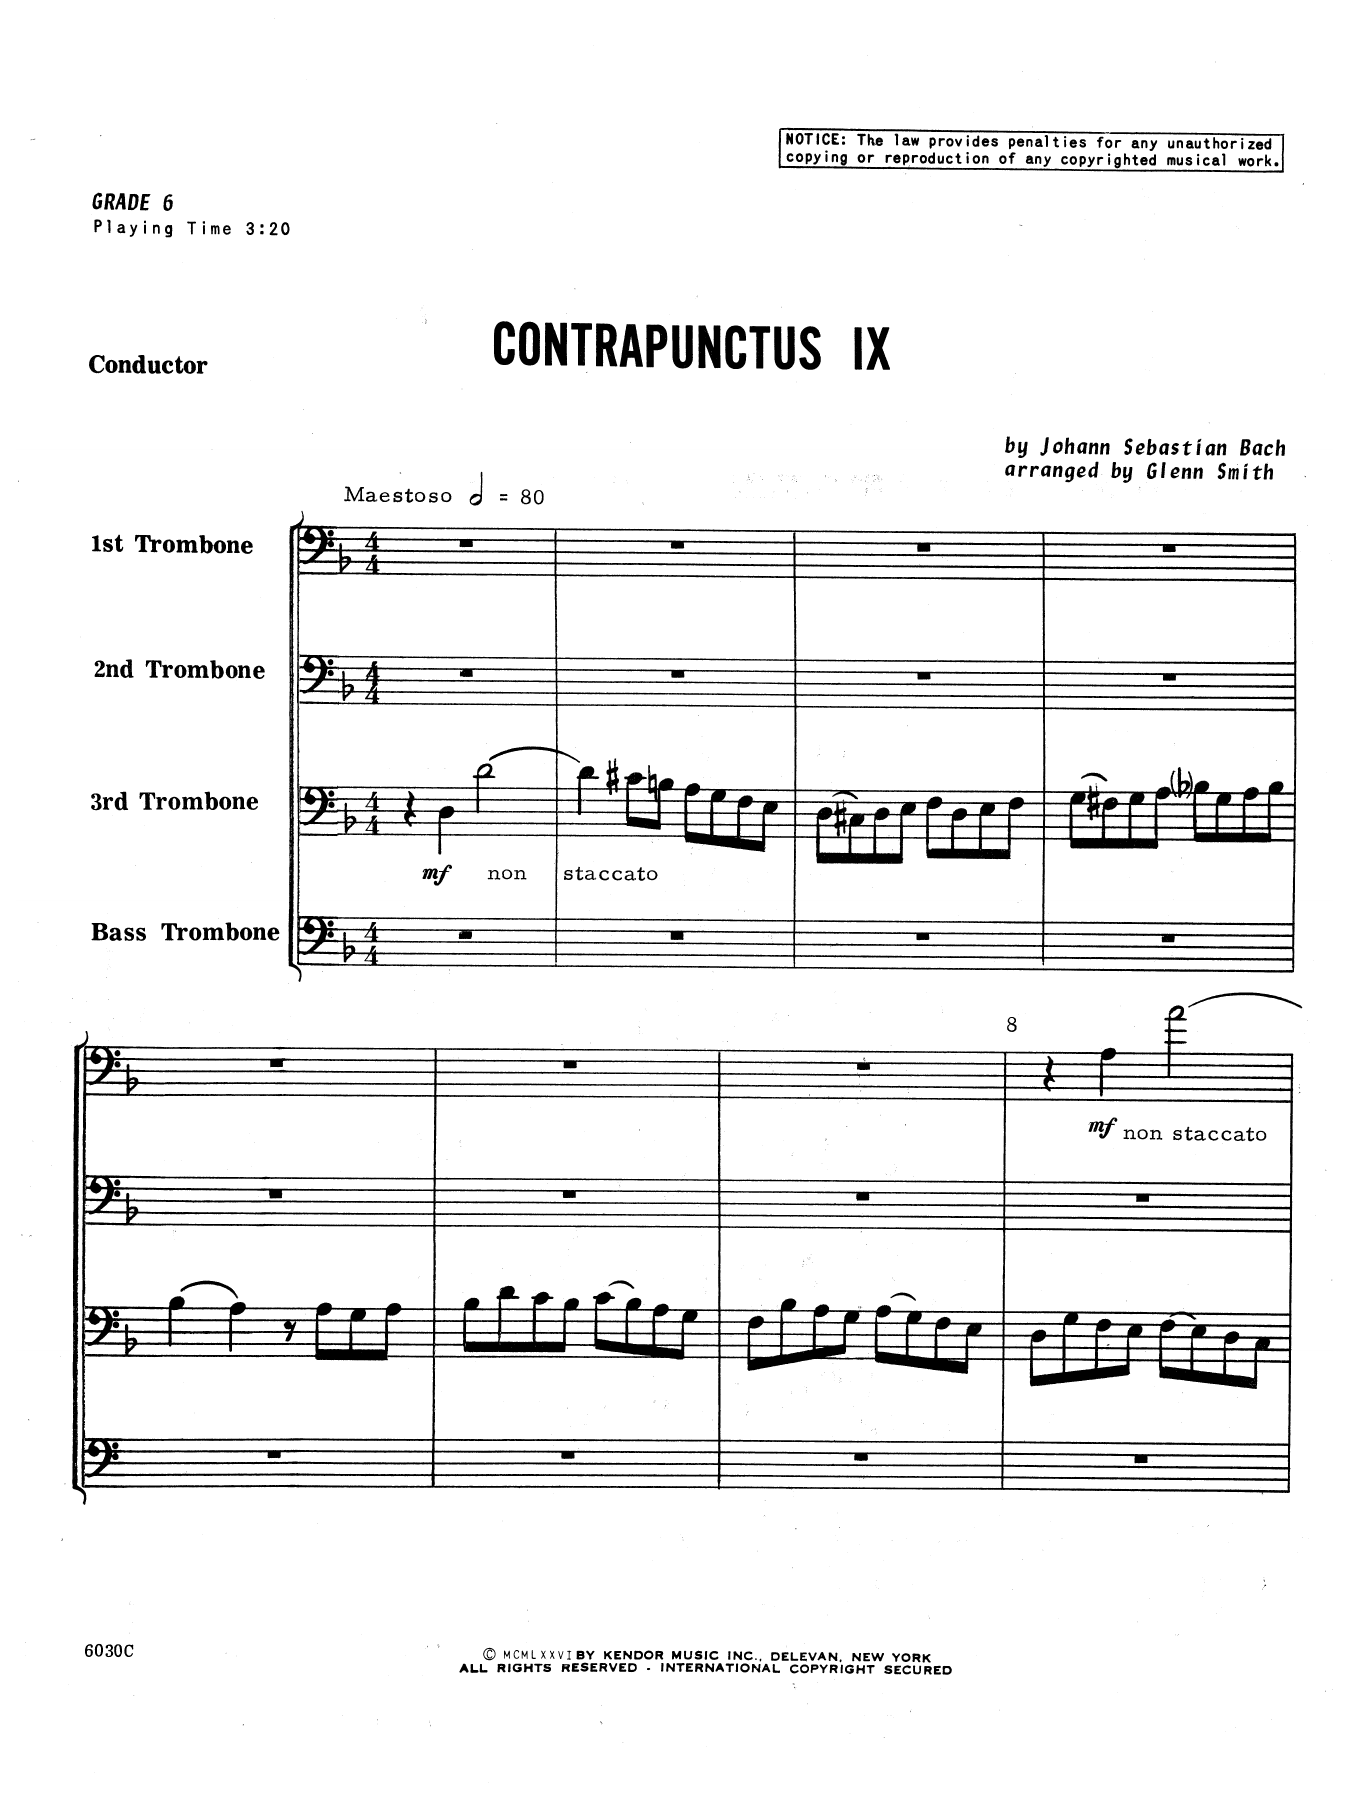 Contrapunctus IX (COMPLETE) sheet music for trombone quartet by Glen Smith and Johann Sebastian Bach. Score Image Preview.